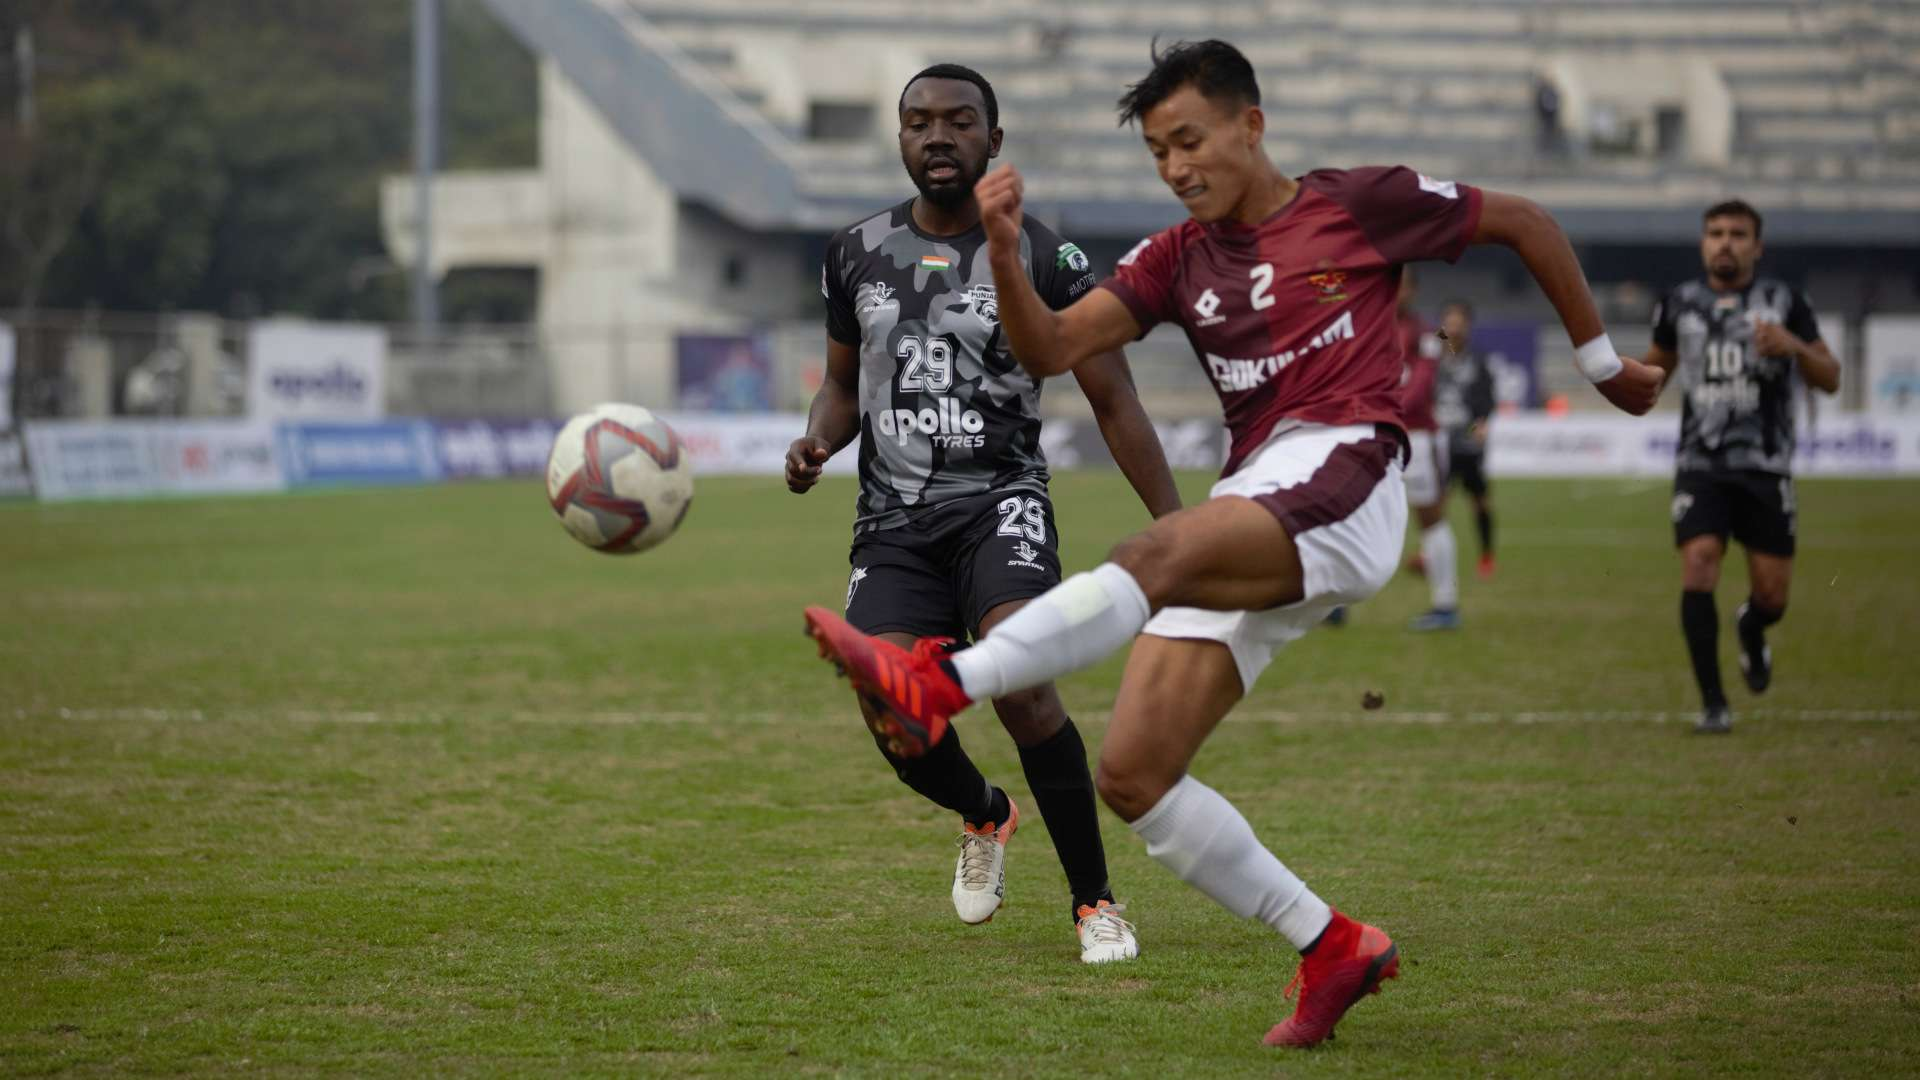 i-league-2019-20:-gokulam-kerala-vs-churchill-brothers-–-tv-channel,-stream,-kick-off-time-&-match-preview